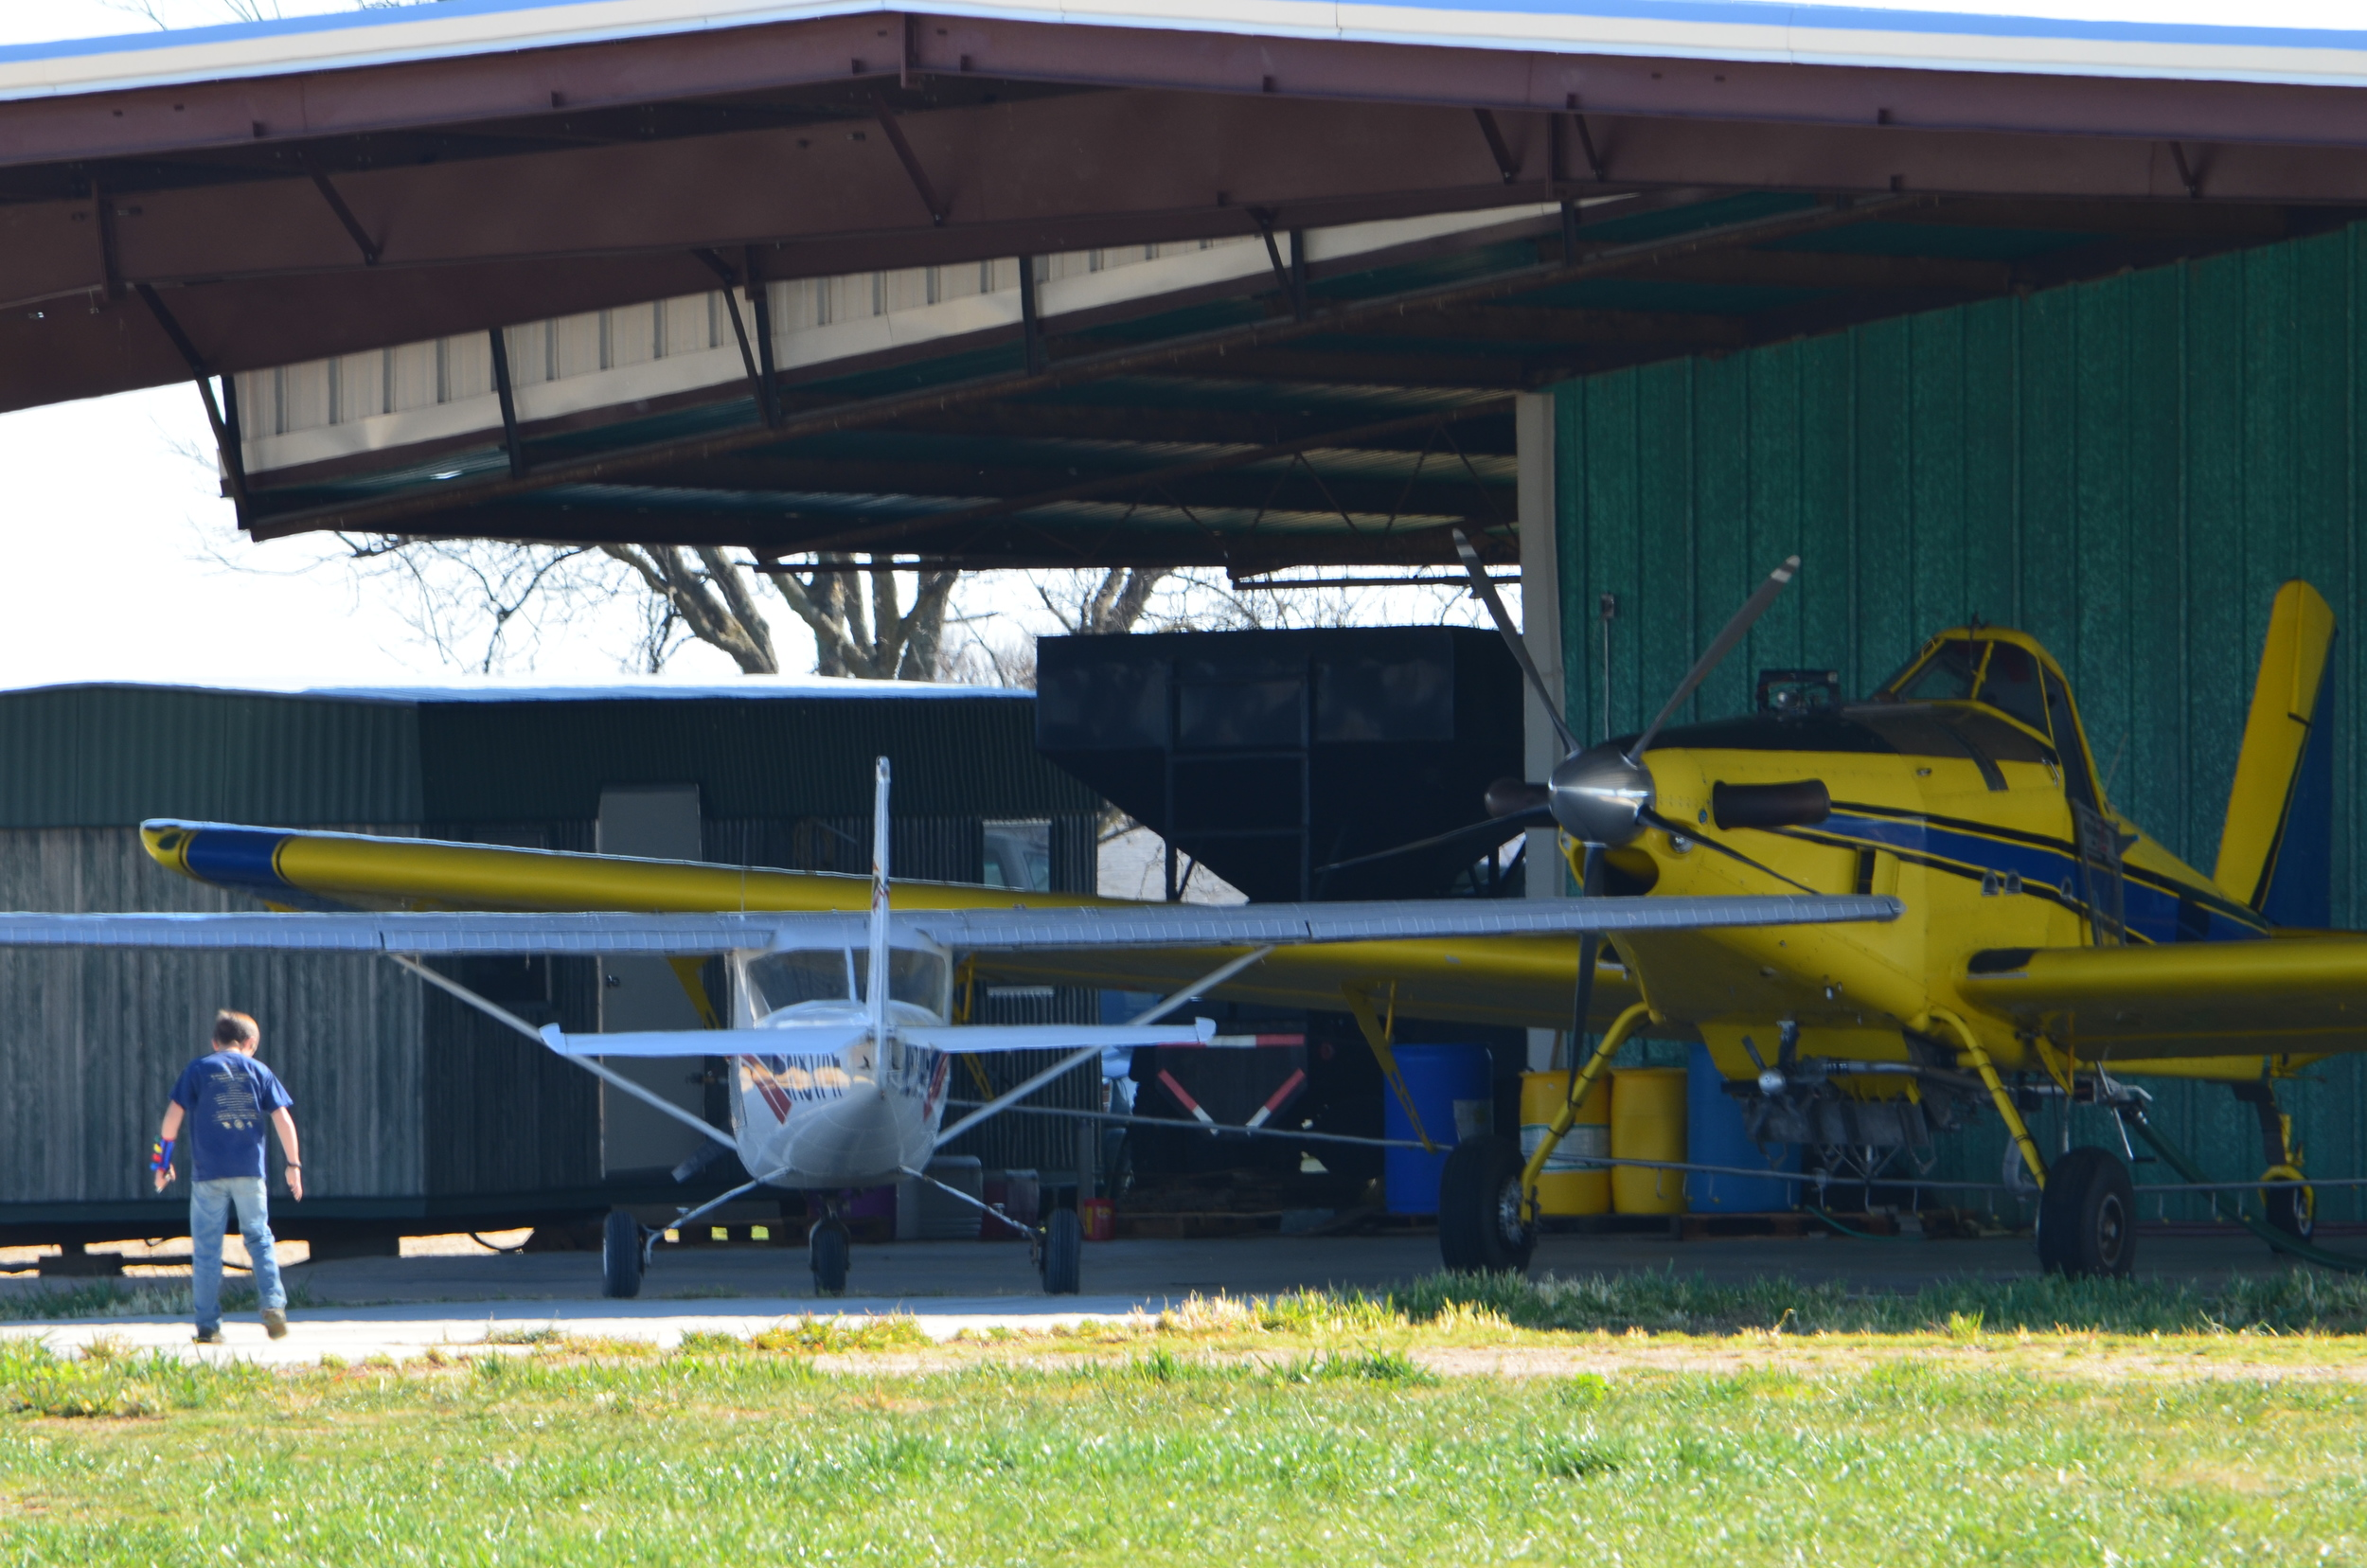 yellow ag plane and white passenger plane